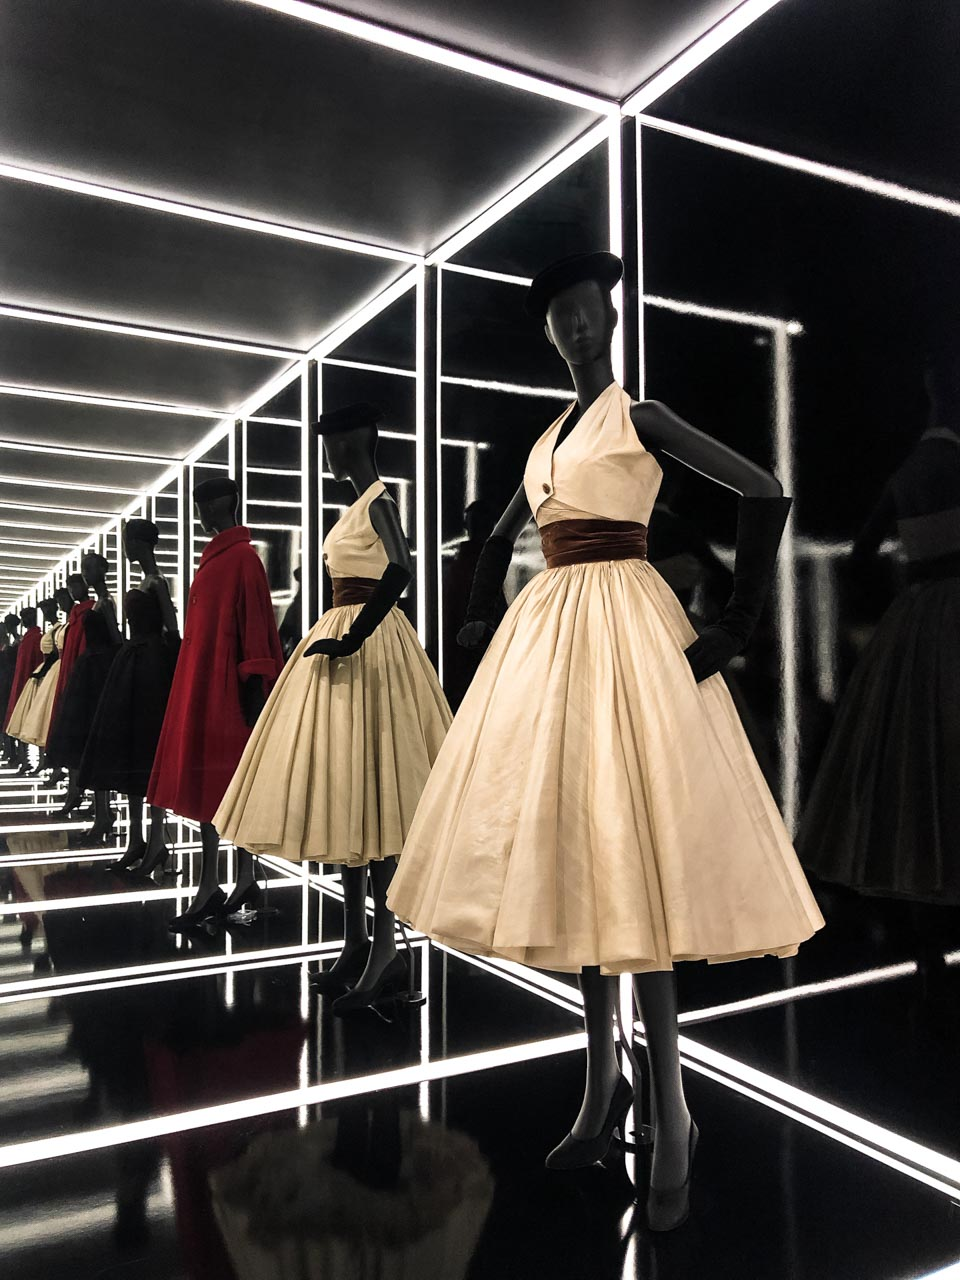 Dior dresses at Victoria and Albert Museum in London